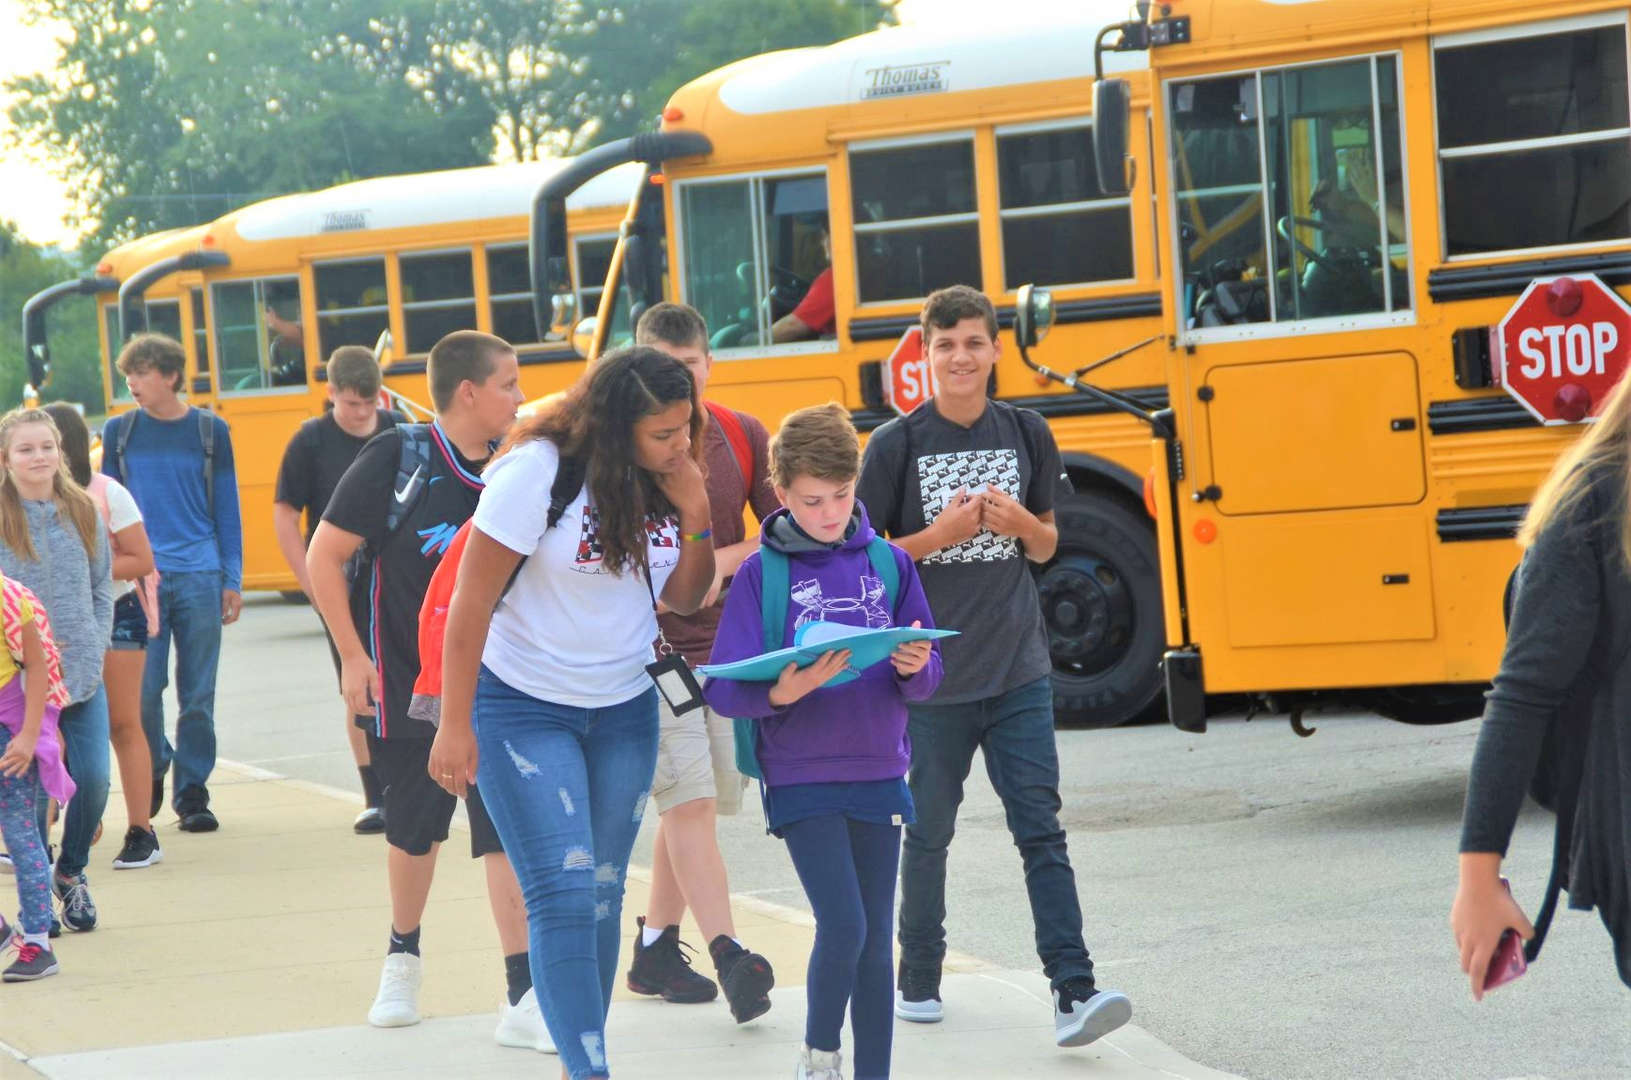 Students getting off the bus.